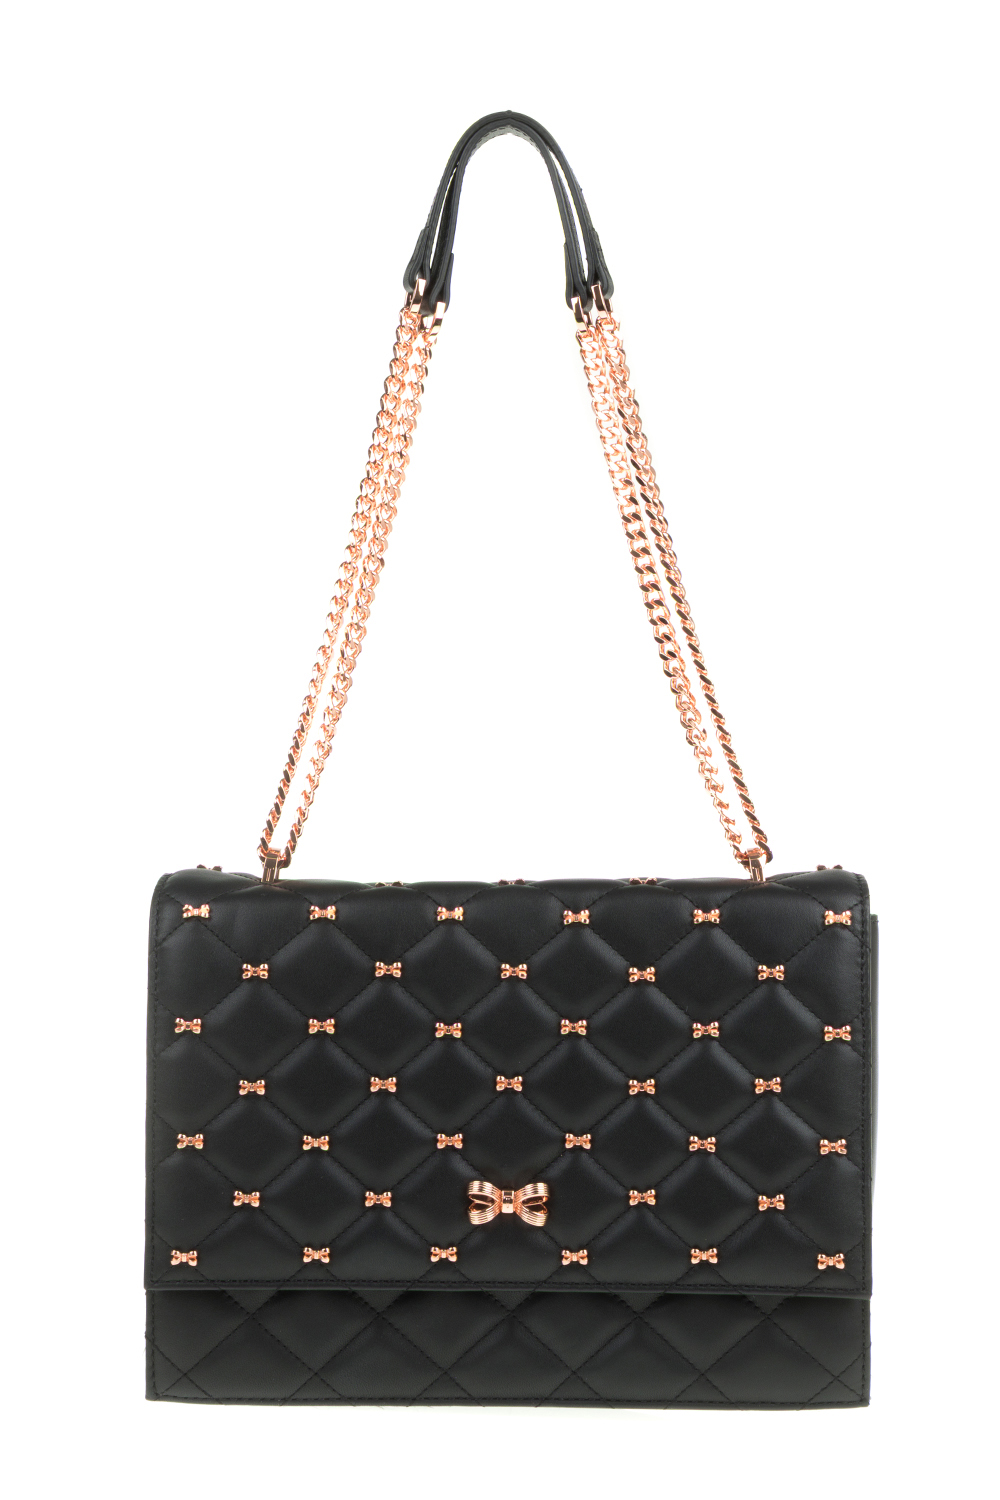 1c7508637ae TED BAKER - Γυναικεία τσάντα ώμου BRIIANA BOW QUILTED TED BAKER μαύρη